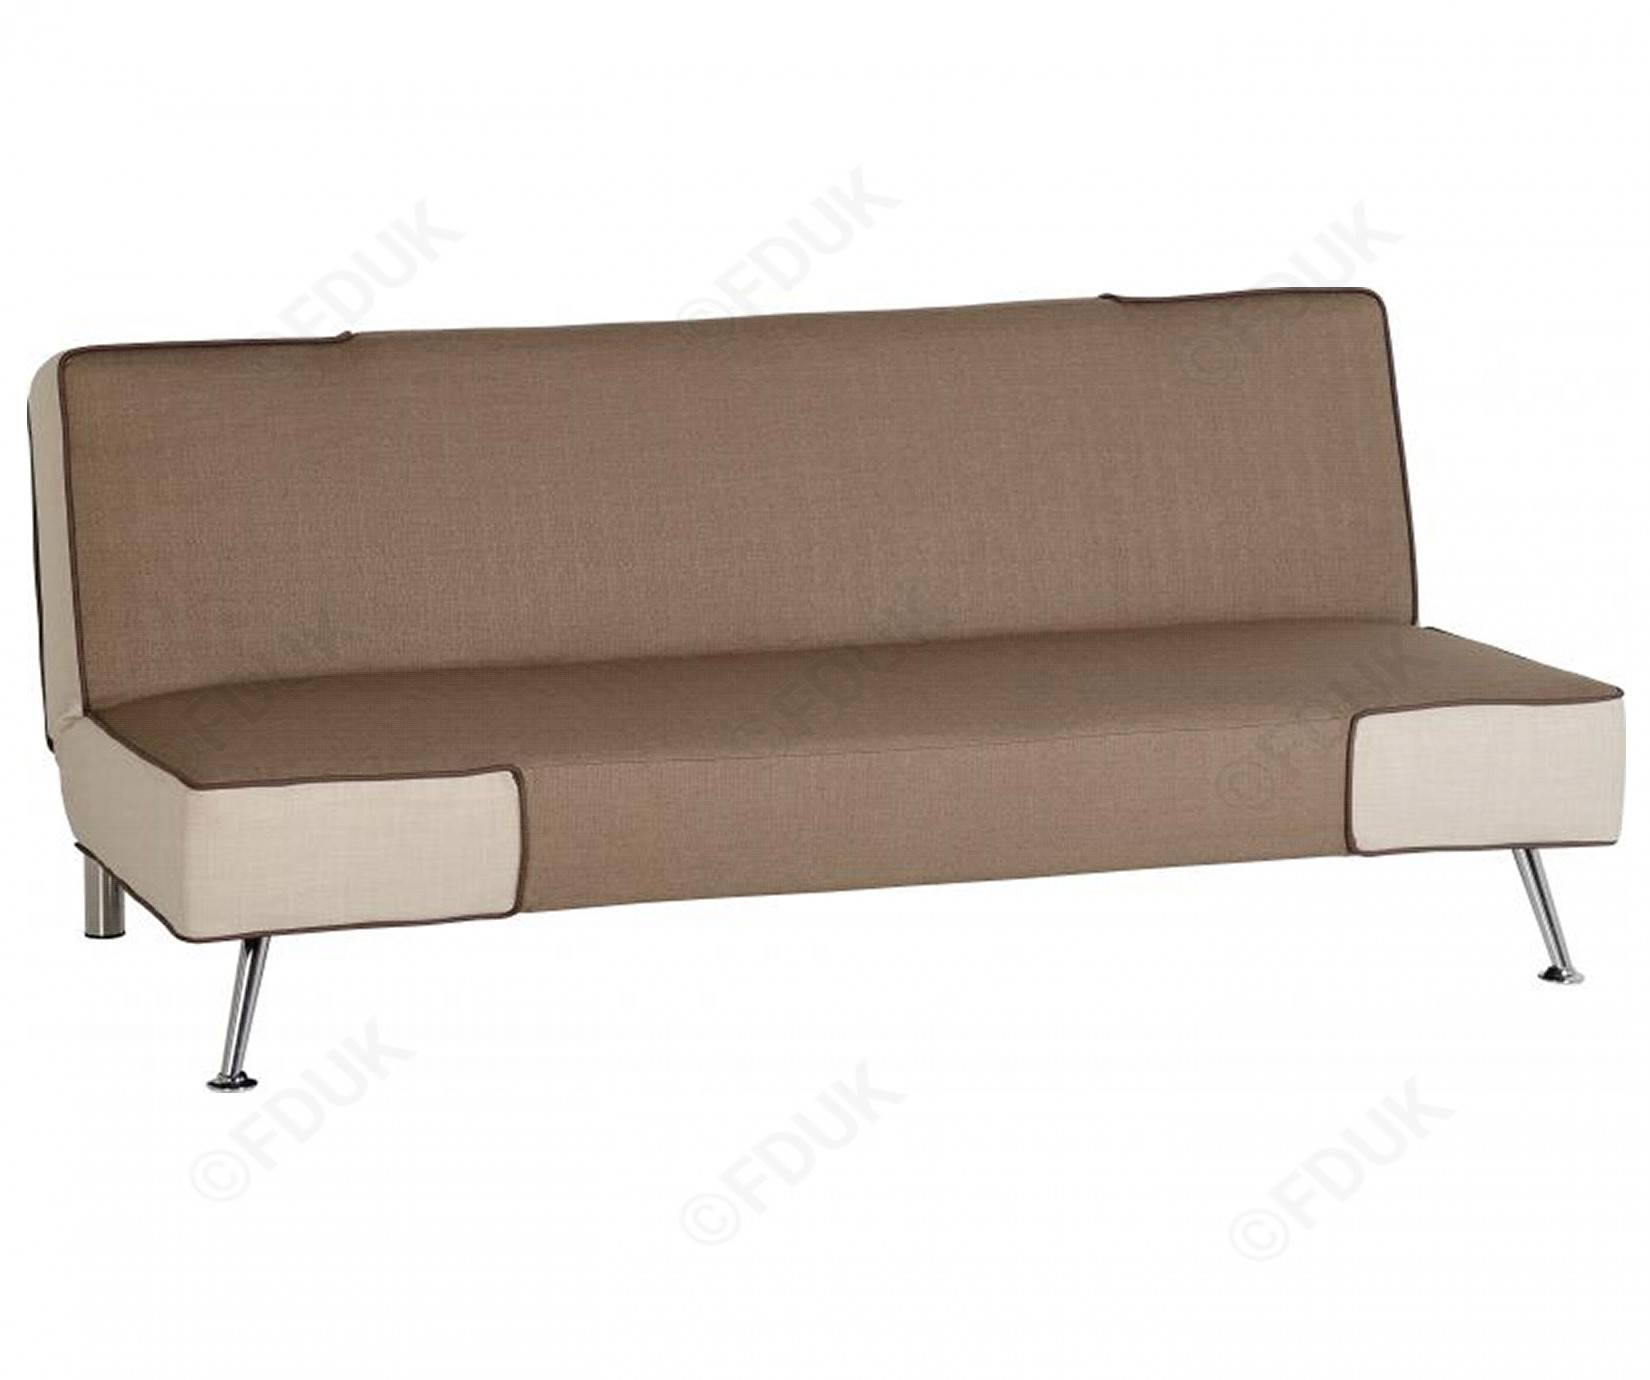 Seconique | Florence Brown And Cream Fabric Sofa Bed regarding Florence Sofa Beds (Image 17 of 25)